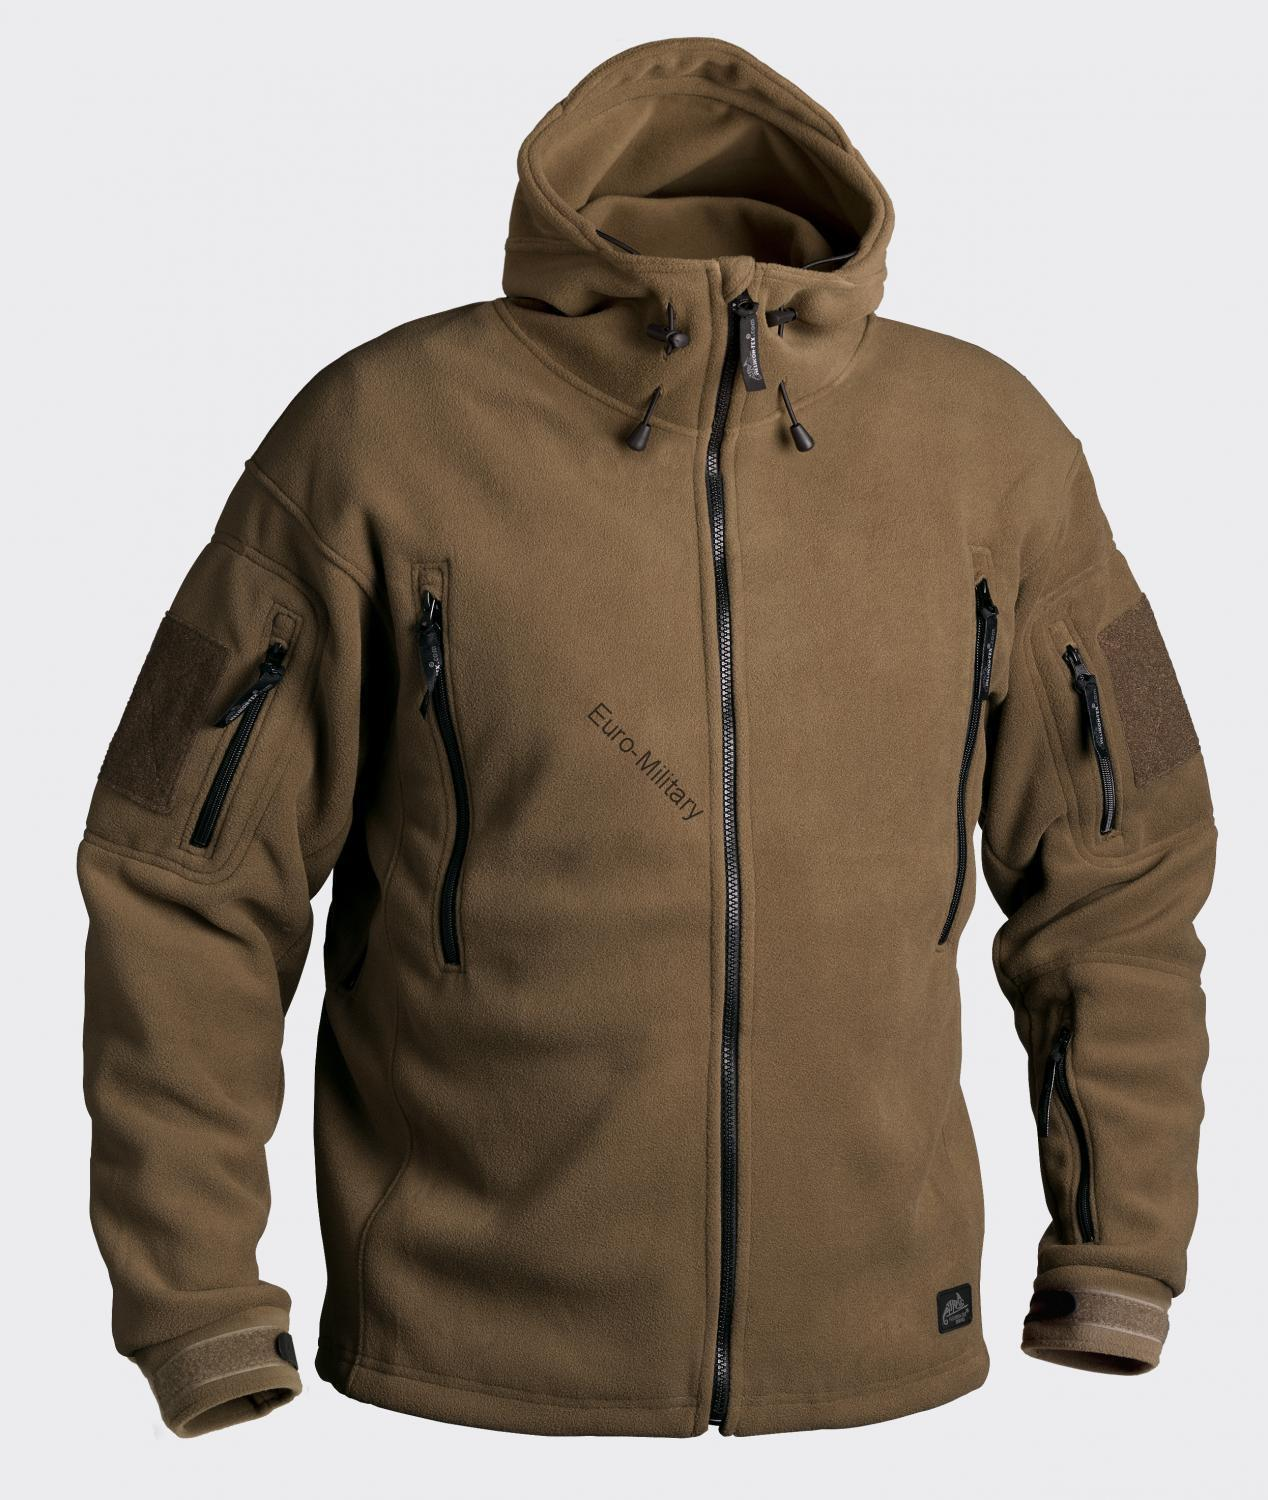 Helikon-Tex Patriot Heavy Fleece Jacket - Coyote